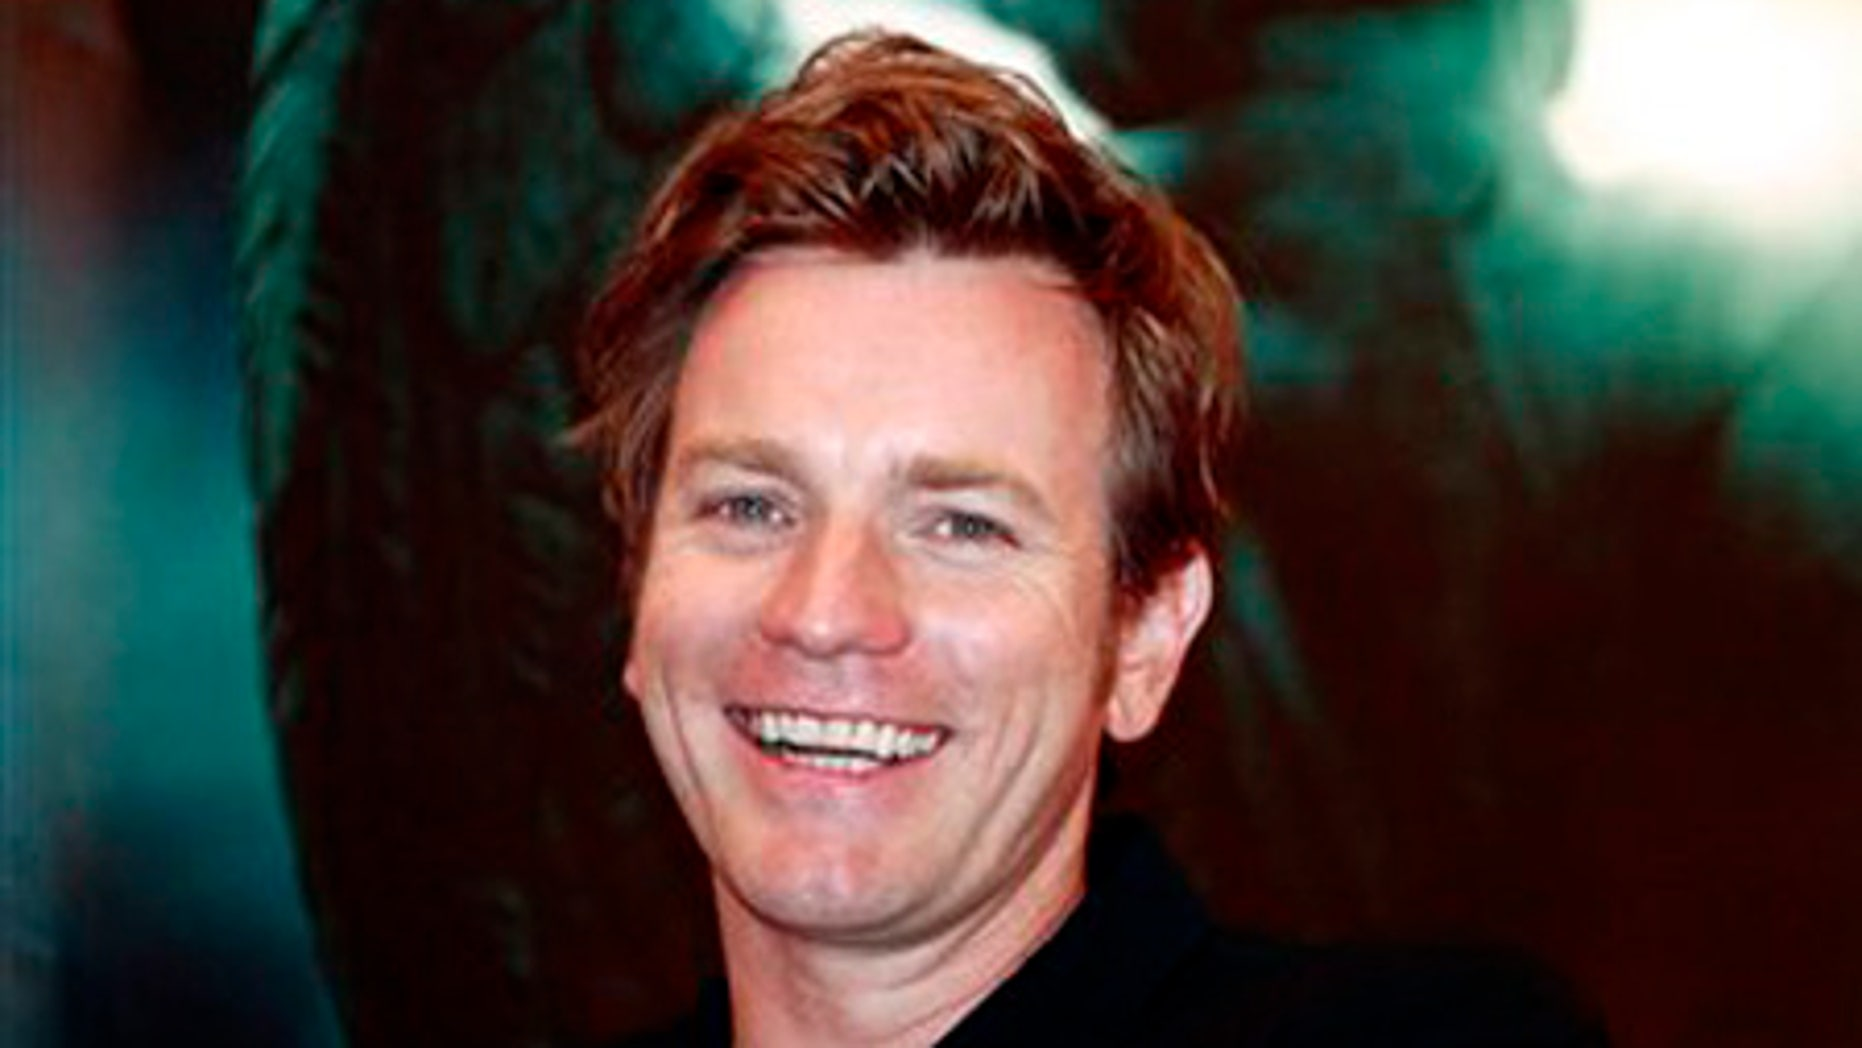 """British actor Ewan McGregor smiles during a press conference of U.S. movie Angels and Demons as part of the 12th Shanghai International Film Festival Sunday June 21, 2009 in Shanghai, China. Actor Ewan McGregor says the Vatican's criticism of the religious thriller """"Angels and Demons"""" was muted compared to the previous Robert Langdon adventure """"The Da Vinci Code"""" because the newer film doesn't challenge the Catholic faith. (AP Photo/Eugene Hoshiko)"""